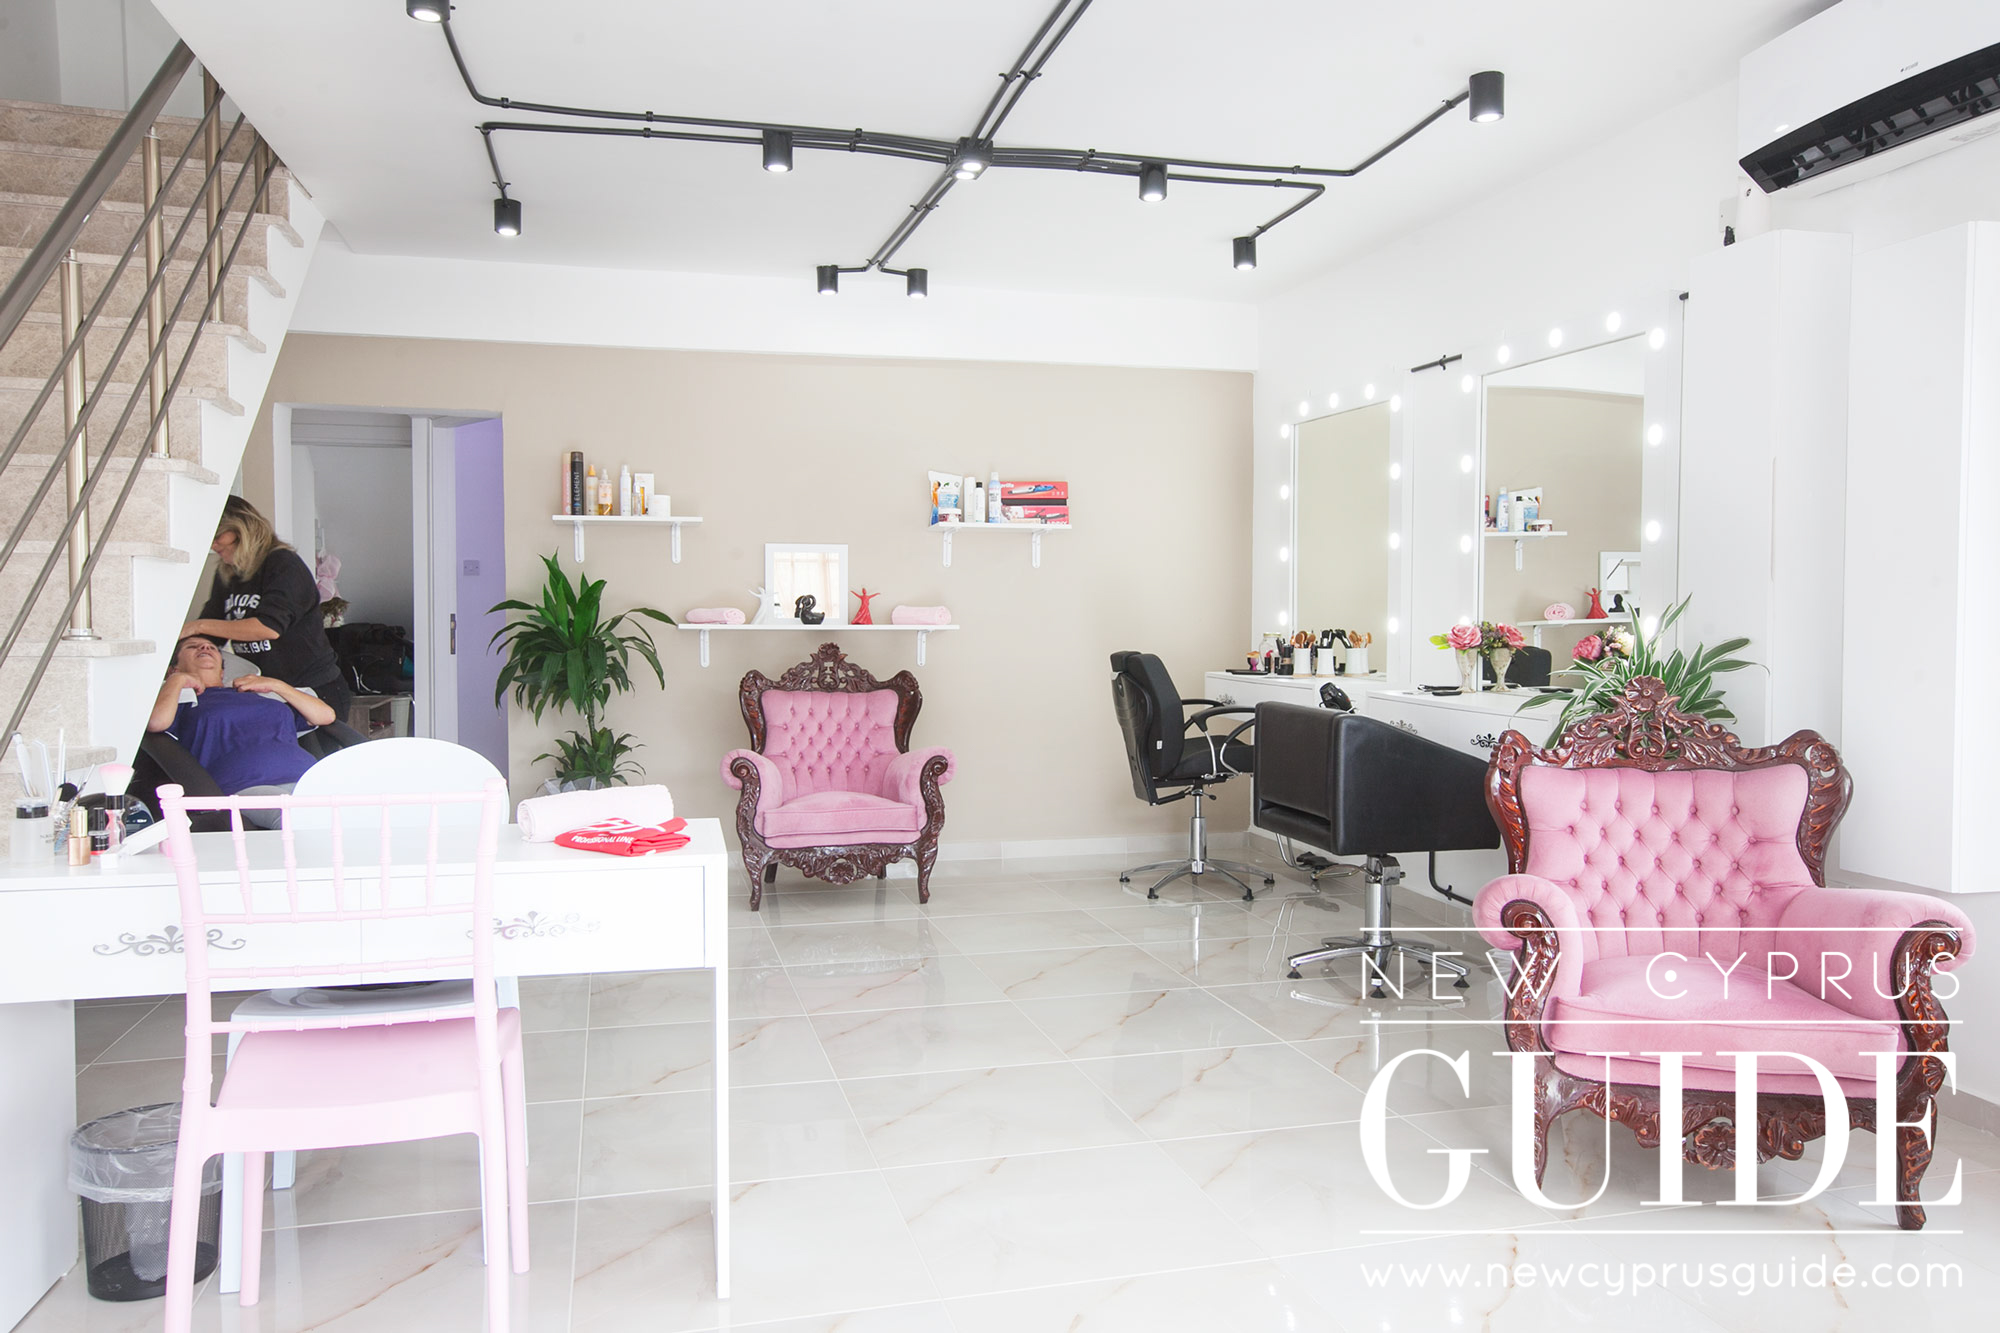 Beauty Salon Black And Pink Luxury Beauty Salon New Cyprus Guide